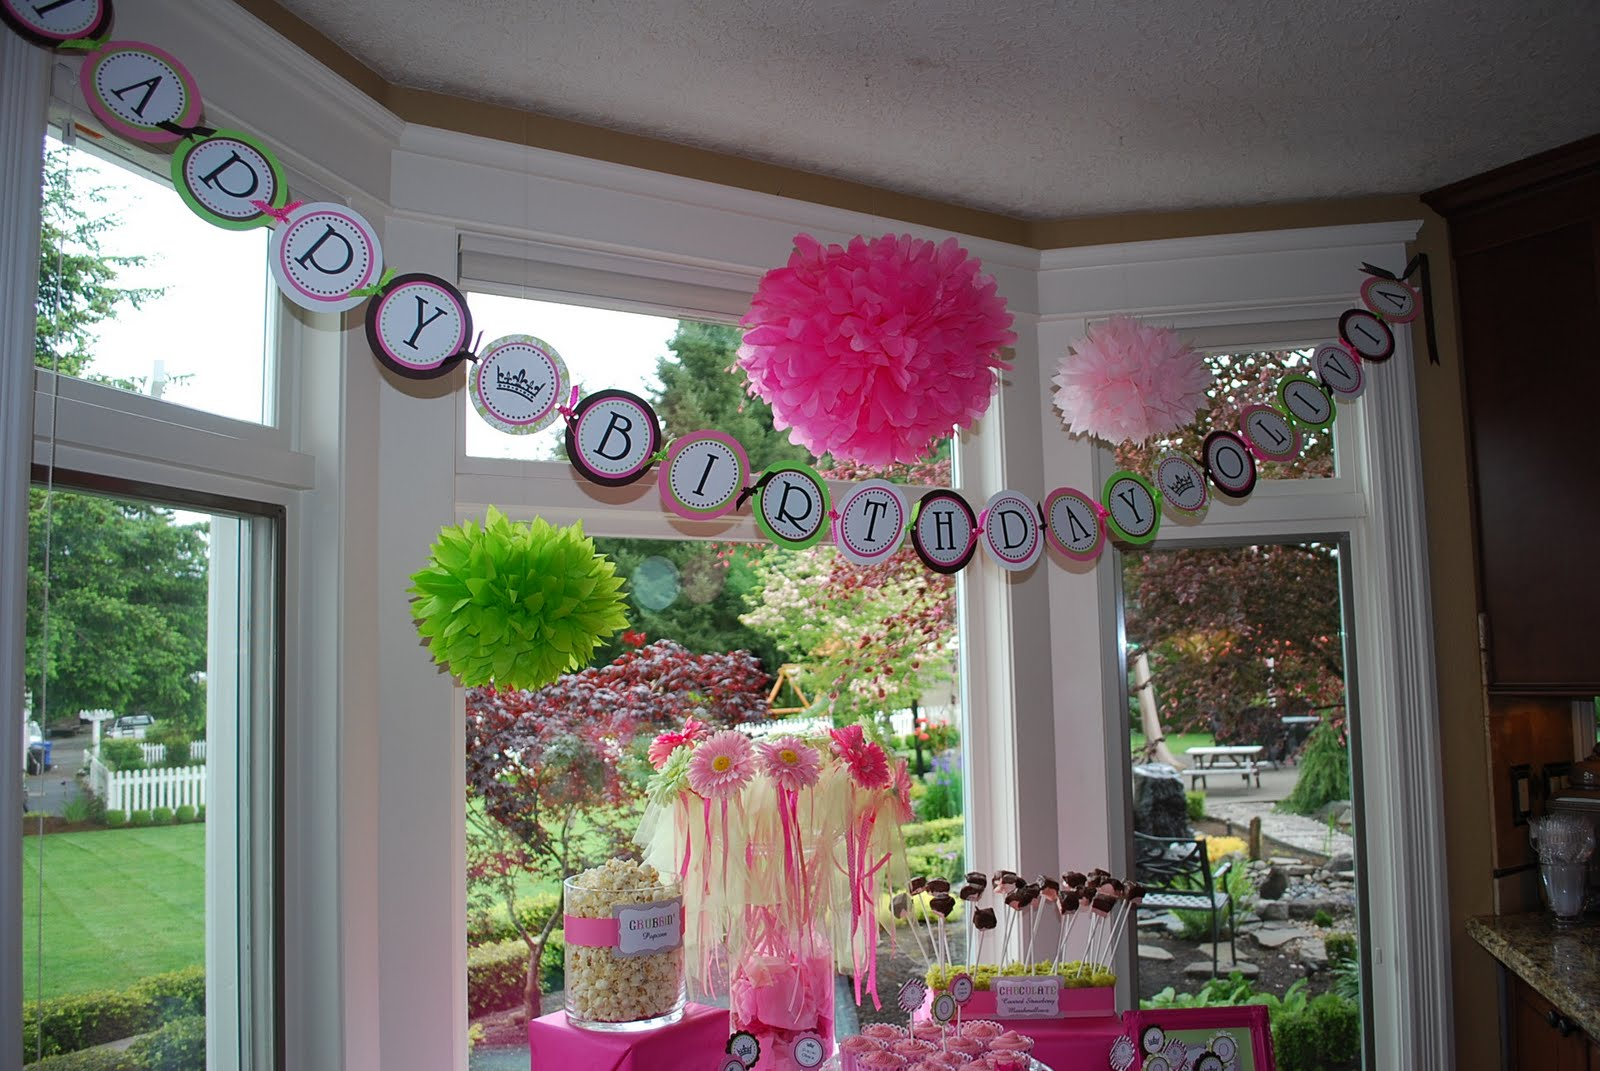 1st Birthday Decoration Ideas At Home Part - 28: Iu0027m Definitely Doing The Poofs Seen In These Photos. Donu0027t You Just Love  The Grouping Of Them In The Babyu0027s Room In The Corner Of The Room.